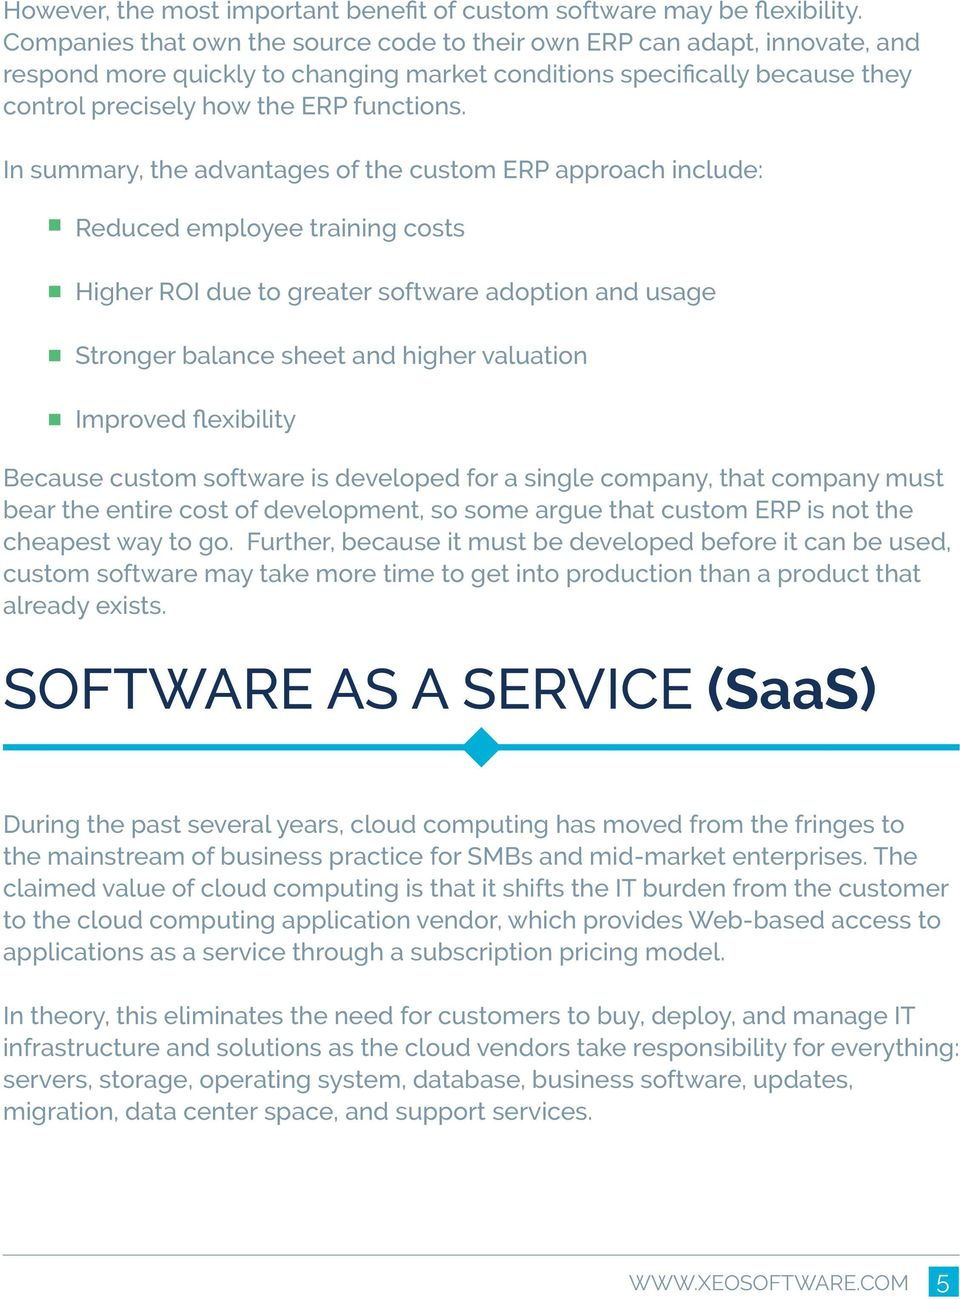 In summary, the advantages of the custom ERP approach include: Reduced employee training costs Higher ROI due to greater software adoption and usage Stronger balance sheet and higher valuation